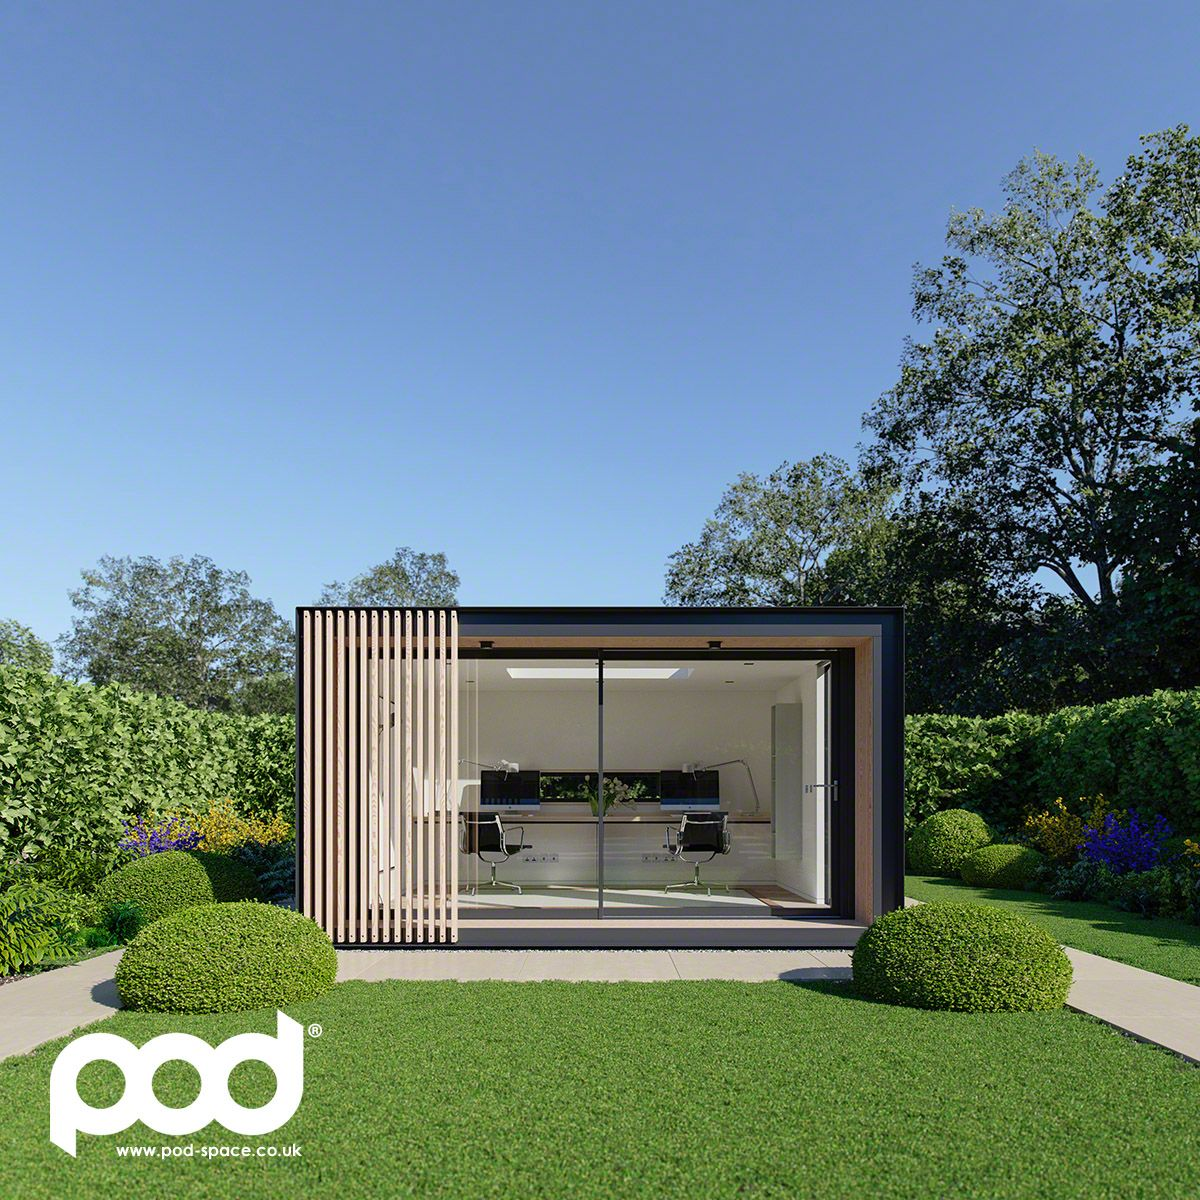 garden pod office. The New Sky Pod Our Is A Large, Open Plan Space Offering · Garden OfficeHome Office